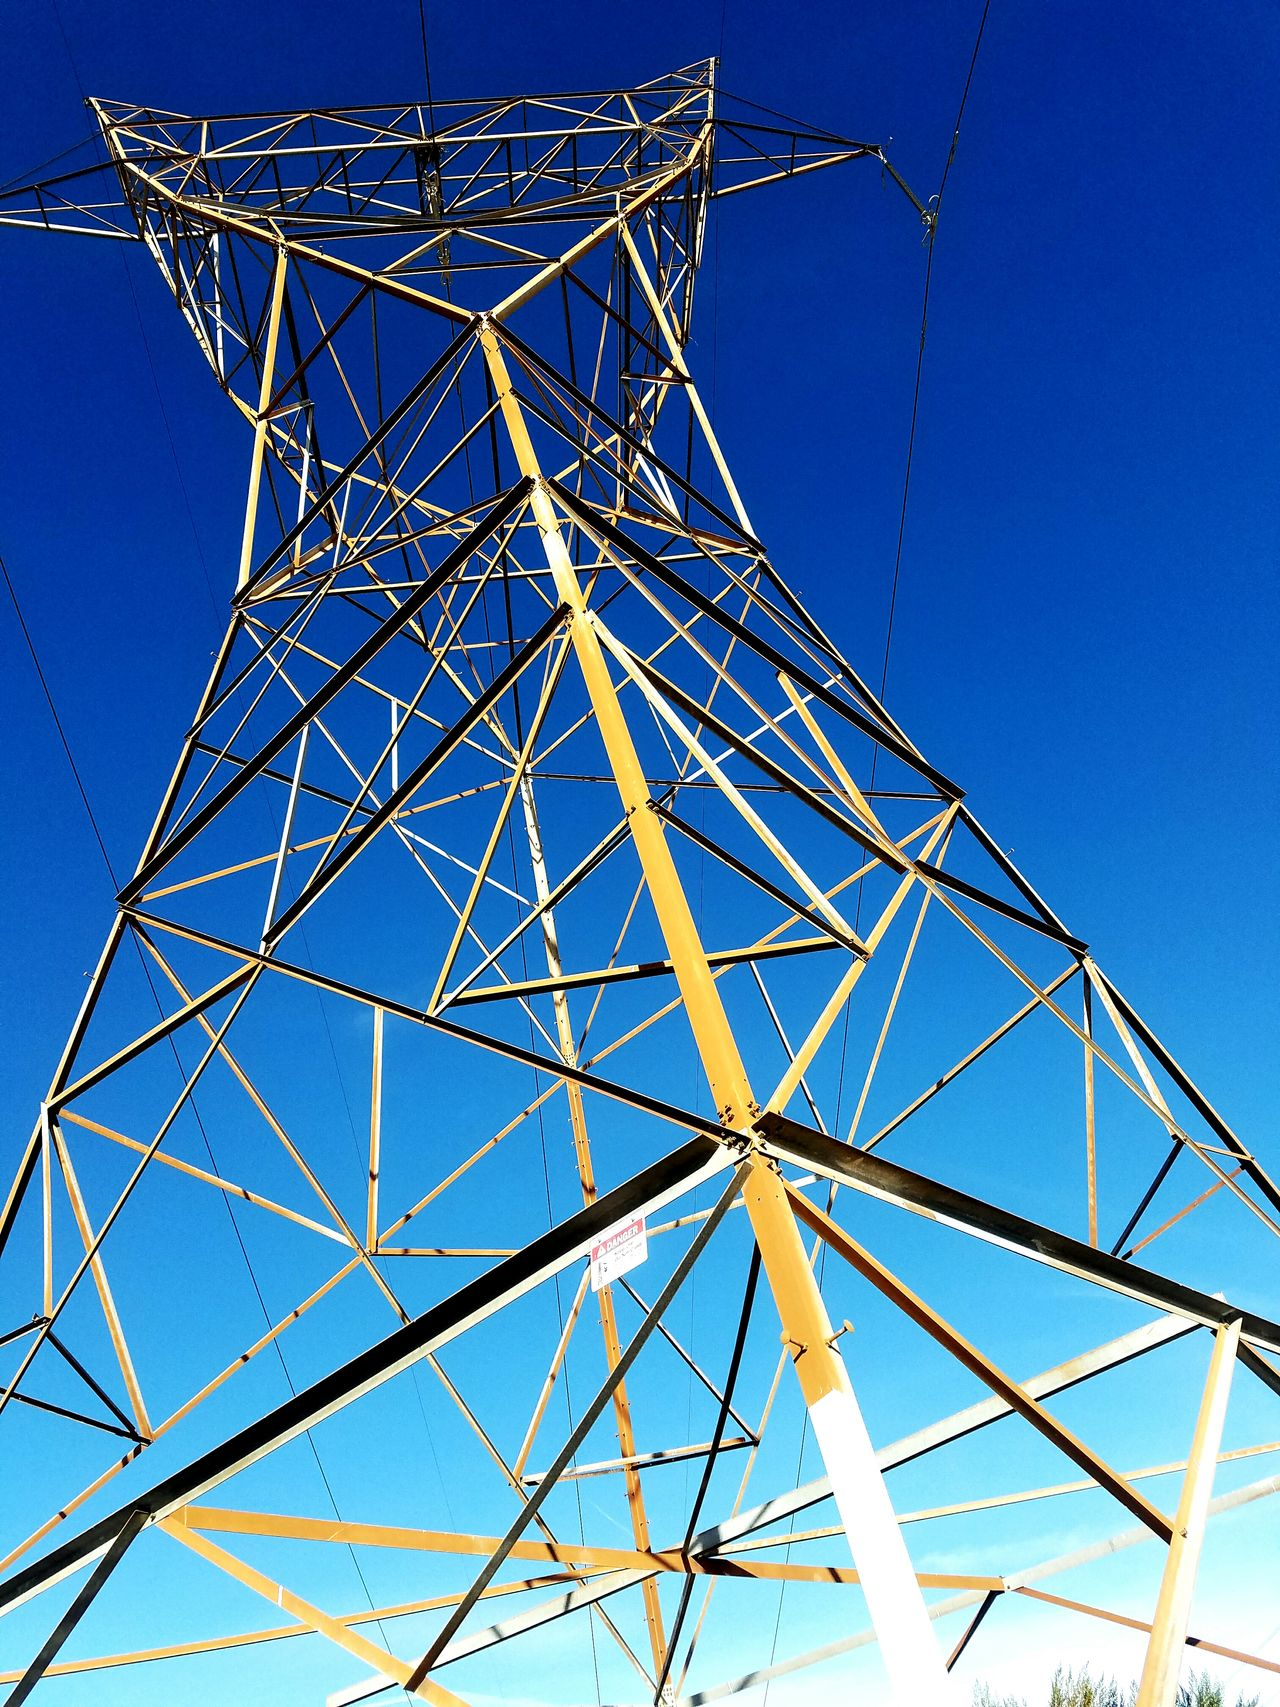 Low Angle View Clear Sky Sky No People Outdoors Day Electricity  Electricity Tower Danger Danger Sign Danger Zone Danger! Dangerous Dangerzone